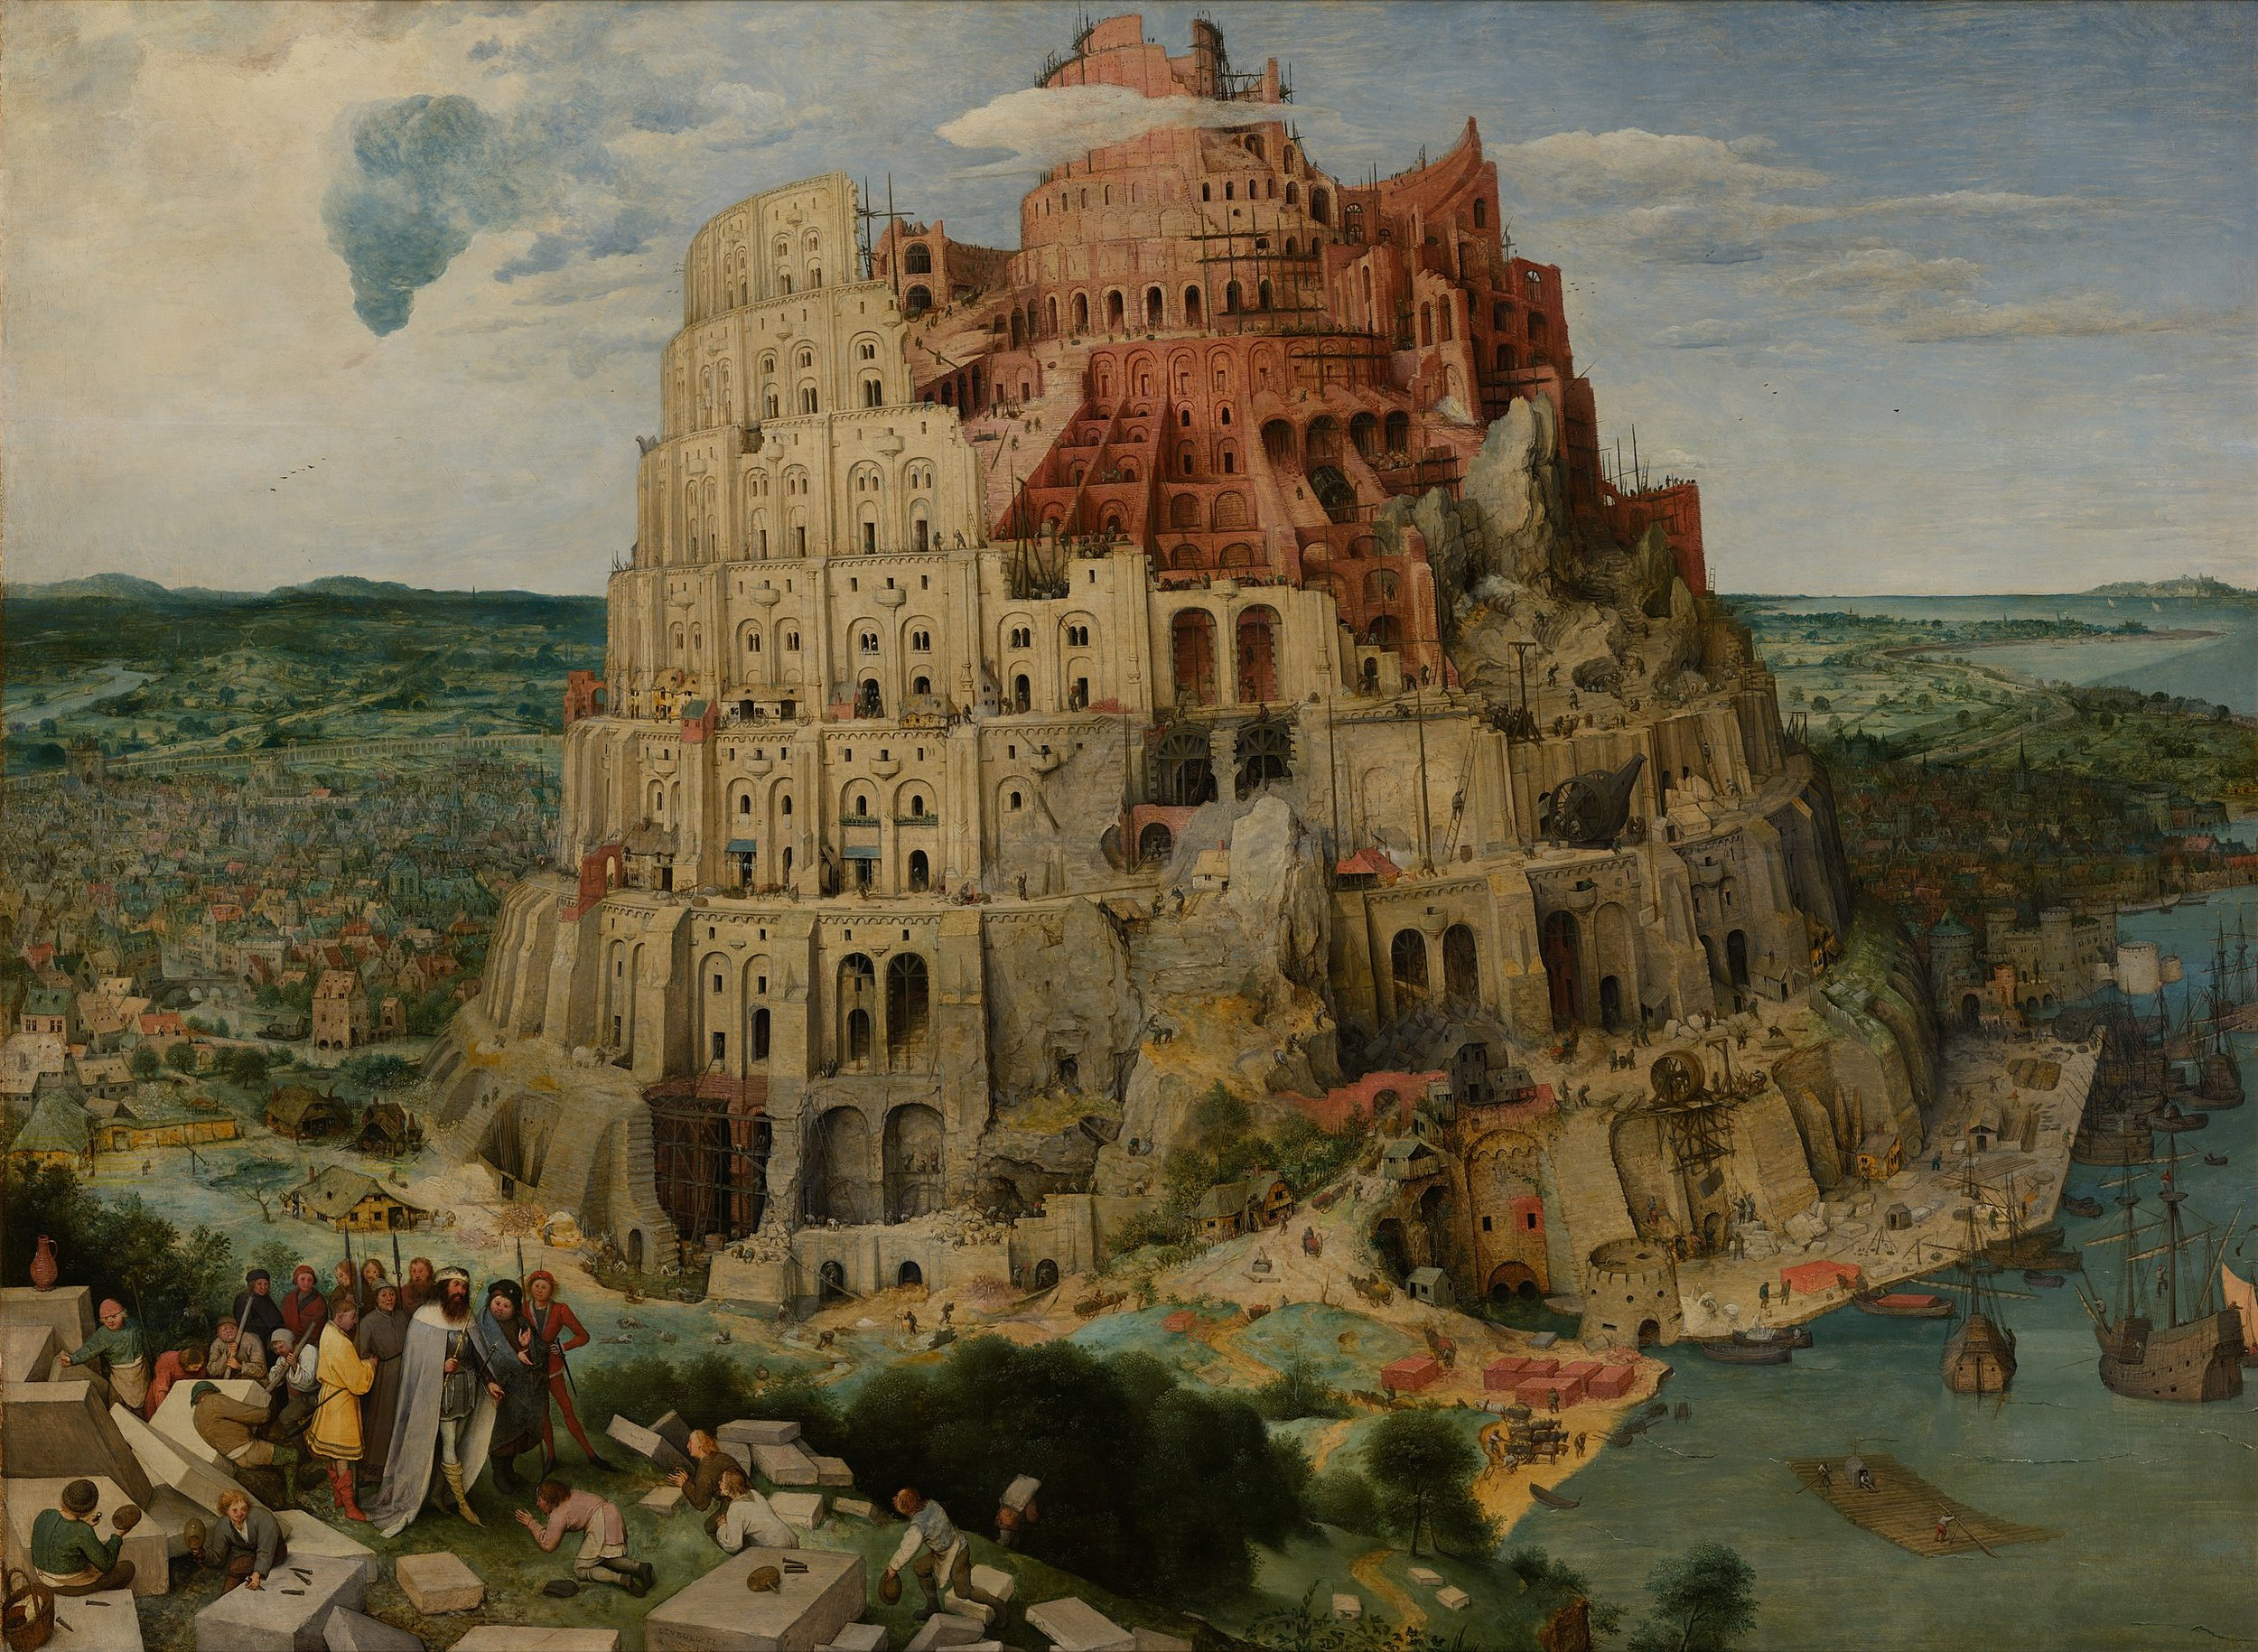 According to the story of Babel, a united  humanity  in the generations following the  Great Flood , speaking a single language and migrating westward, comes to the land of  Shinar  (שִׁנְעָר). There they agree to build a  city  and a  tower  tall enough to reach  heaven .  God , observing their city and tower, confounds their speech so that they can no longer understand each other, and scatters them around the world.